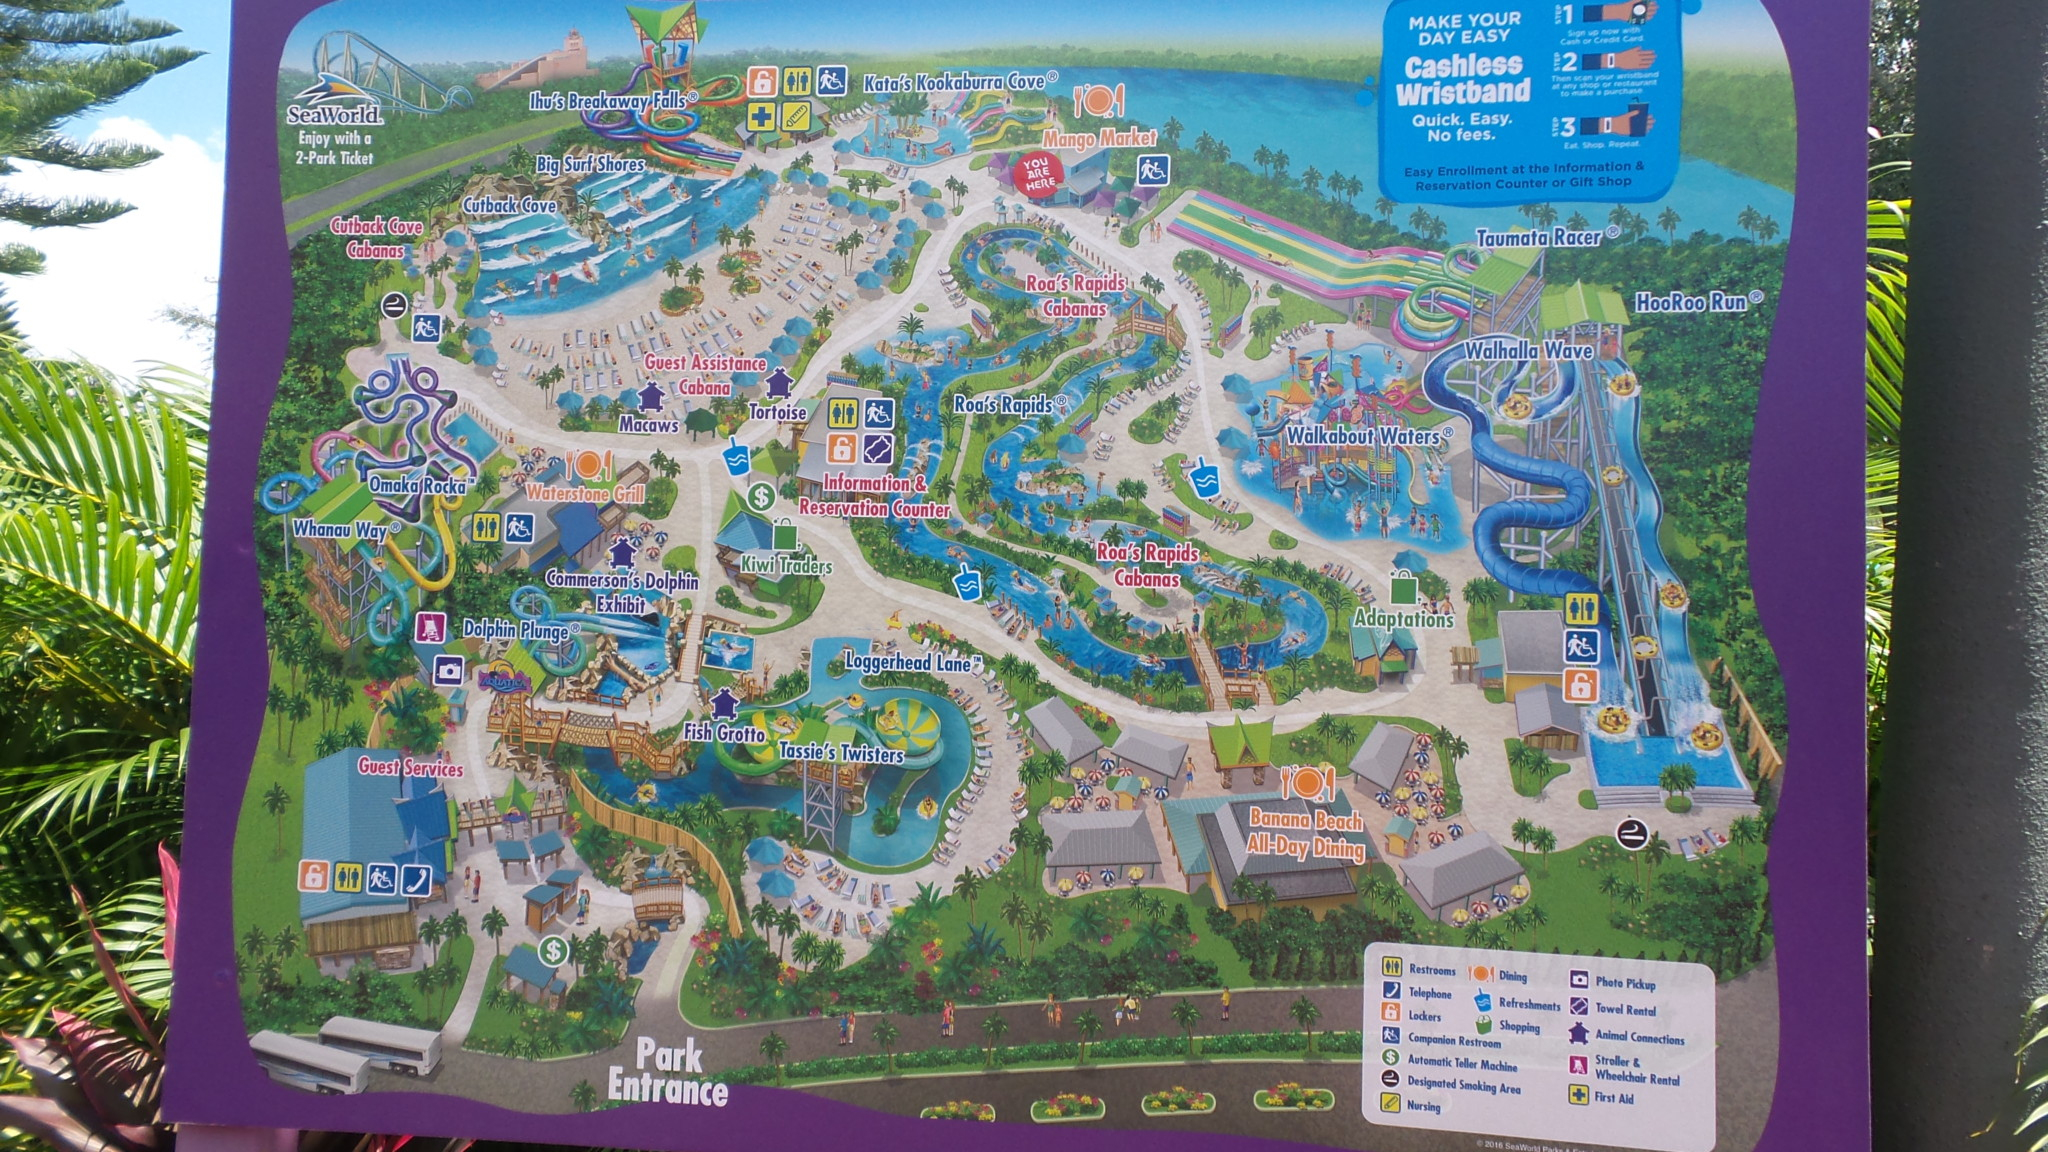 Aquatica Orlando Water Park Map - Best Rangda Ngora - Aquatica Florida Map